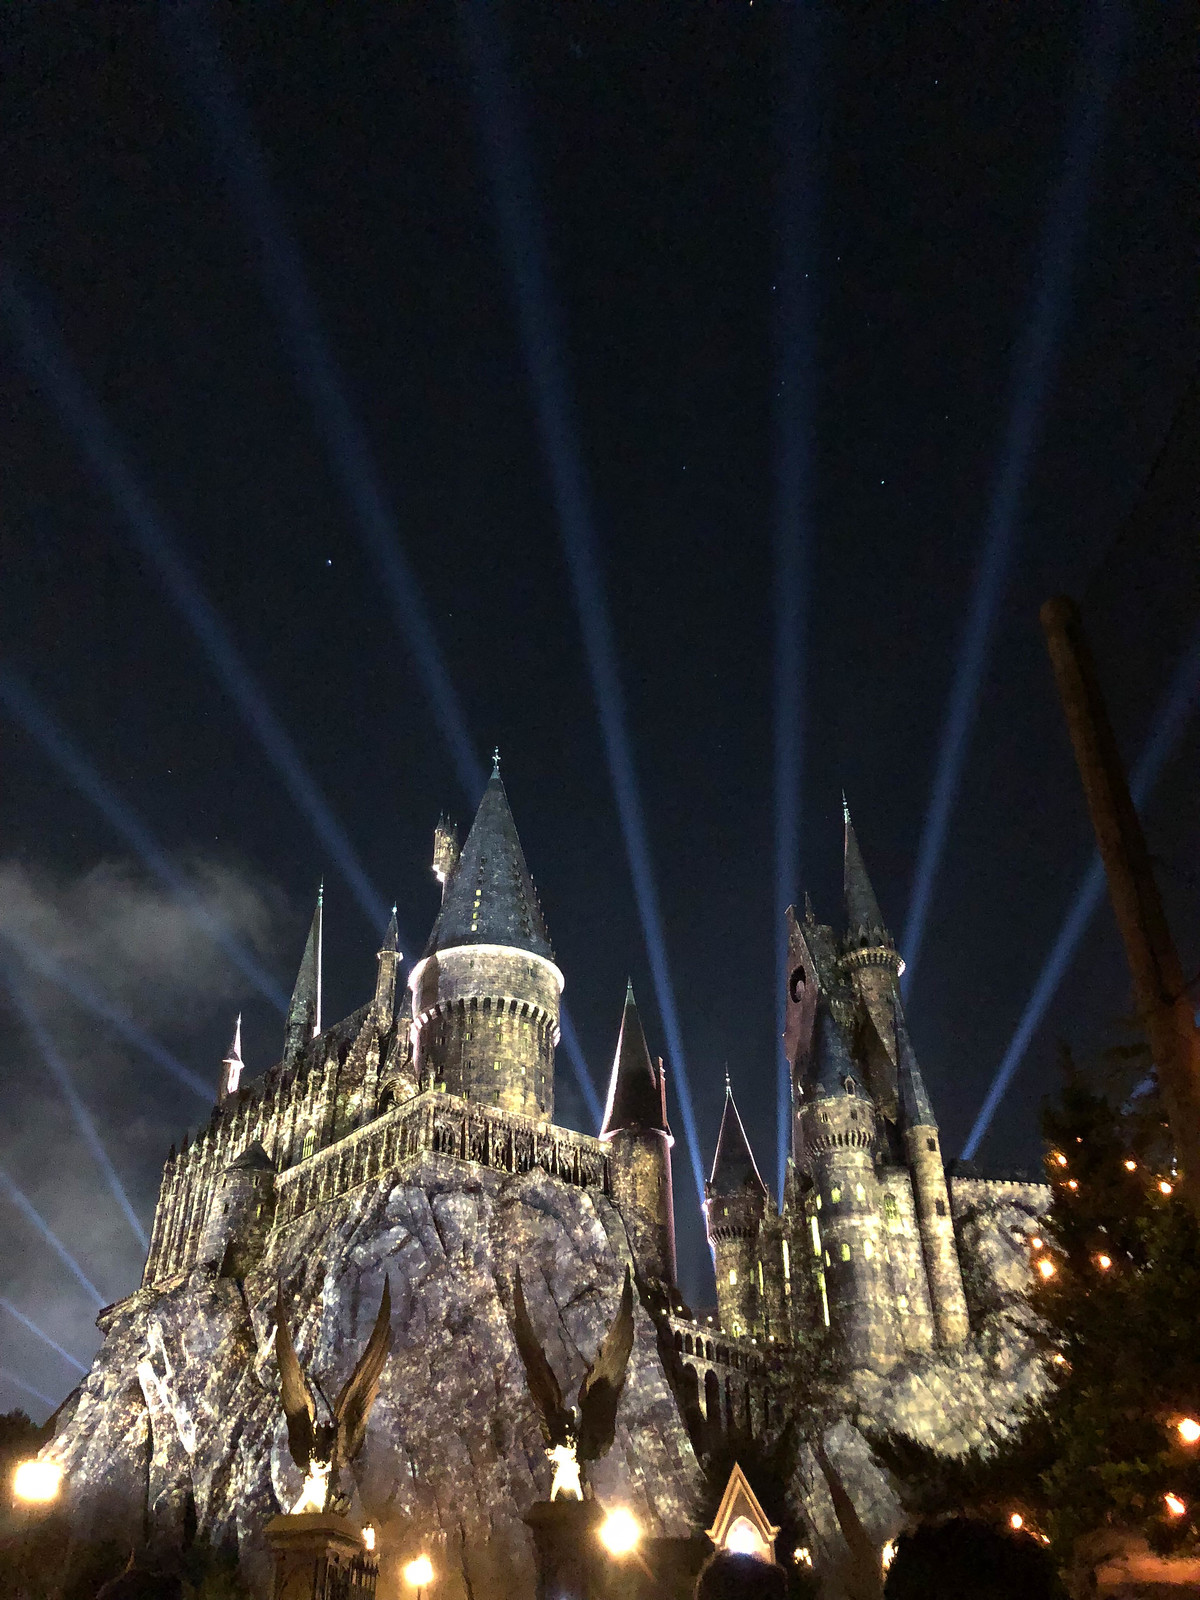 Hogwarts Nighttime Wizarding Lightshow World of Harry Potter Universal Studios Island of Adventure Orlando Florida